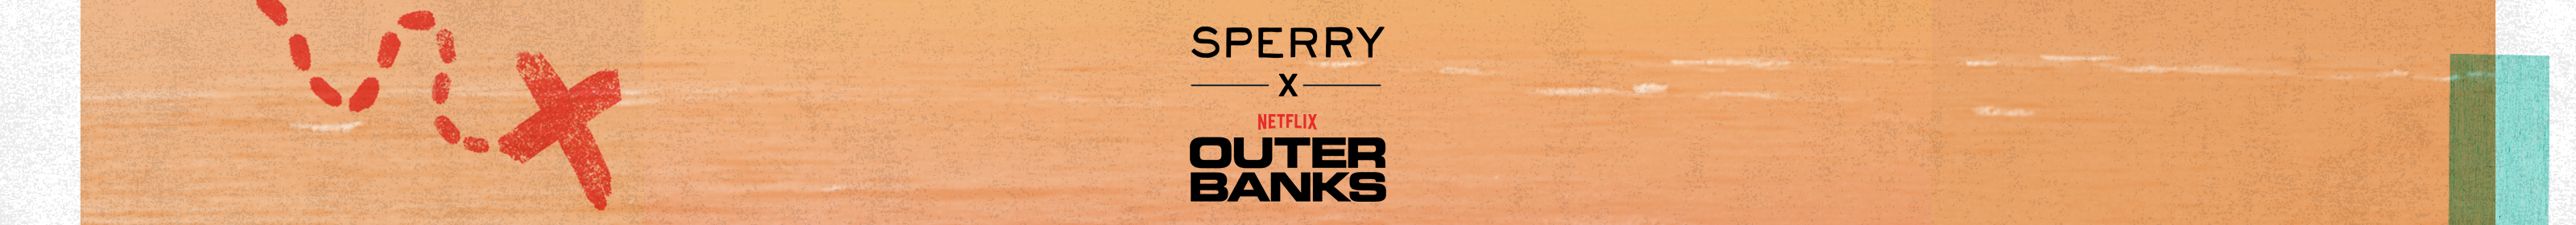 Outer Banks Series from Netflix